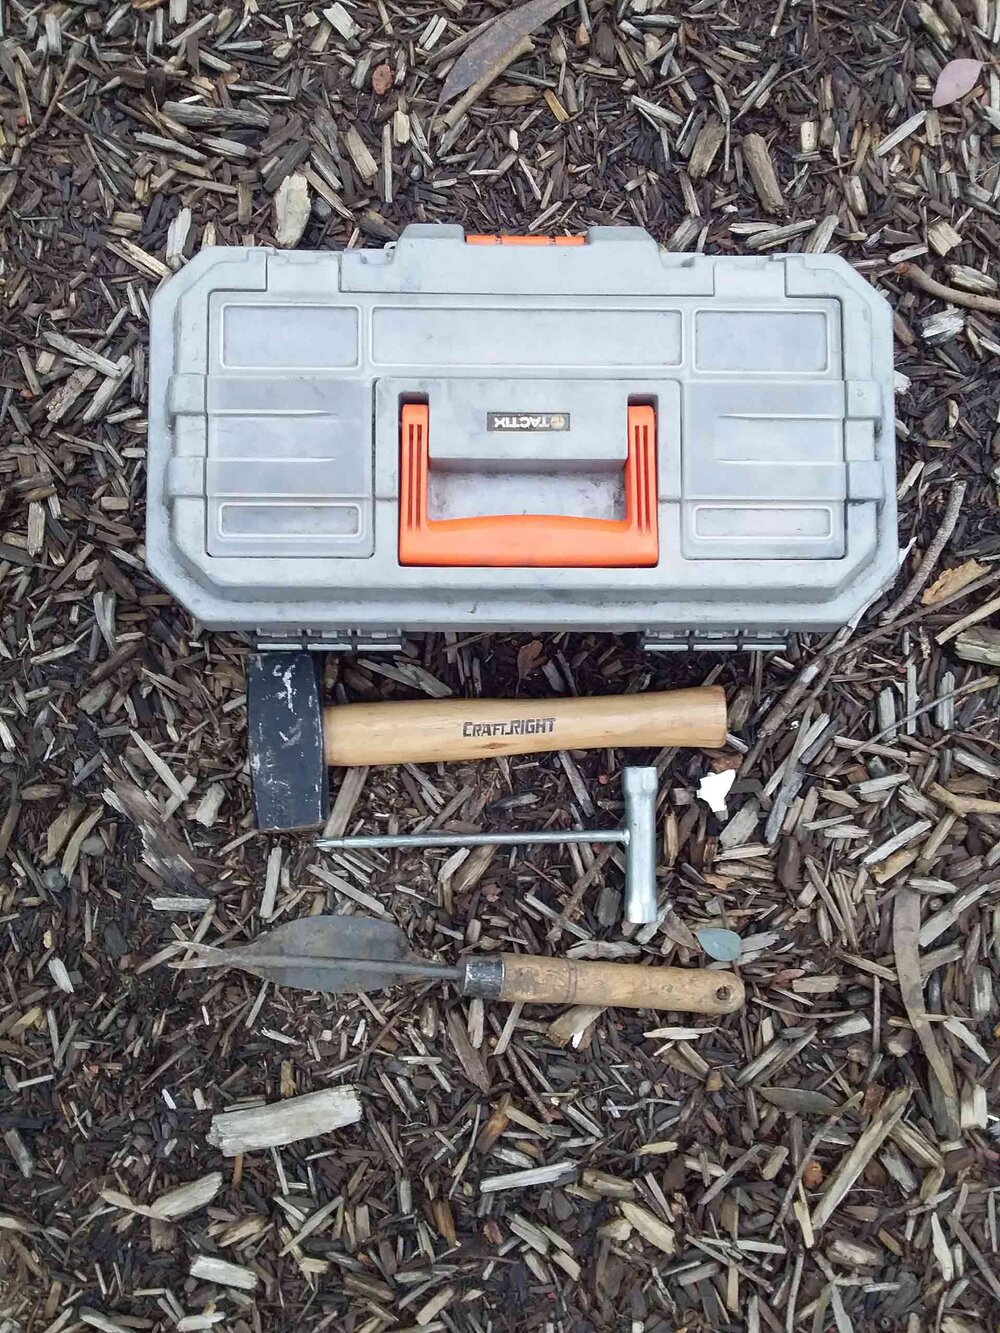 A small toolbox fits in the back of the ute, along with a mallet, a scrench and a hand-weeding tool.